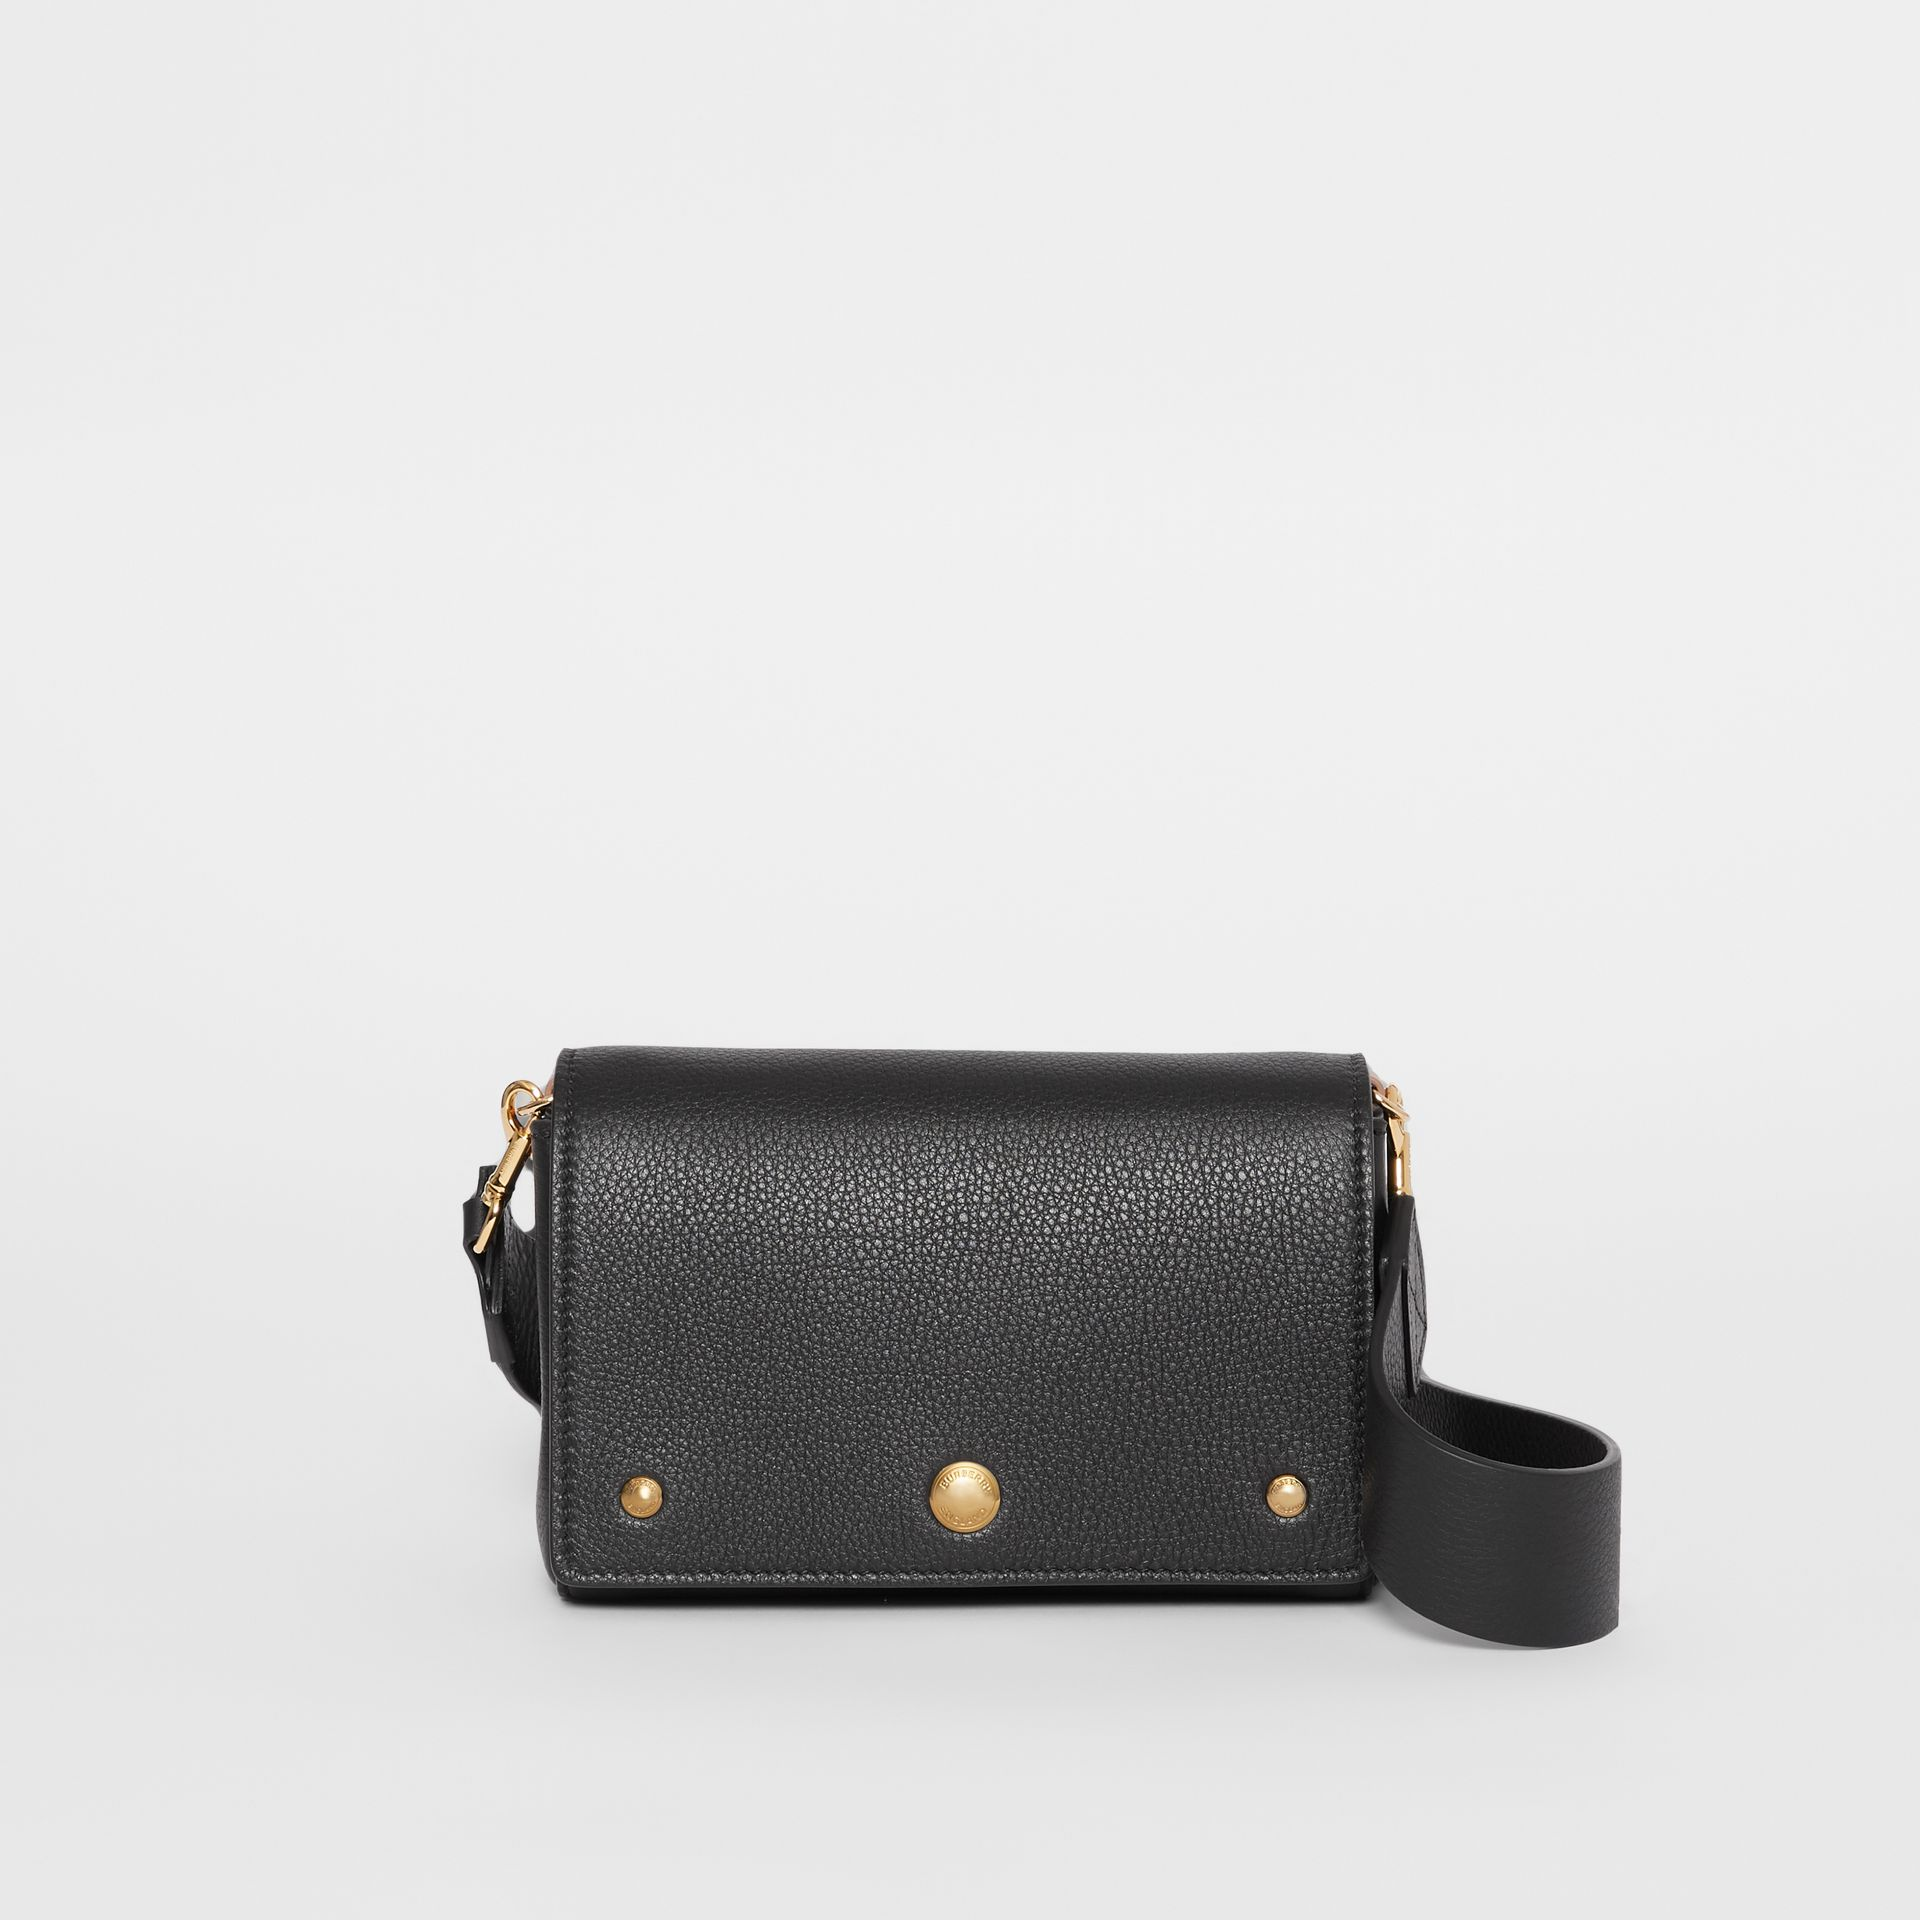 Small Grainy Leather Crossbody Bag in Black - Women | Burberry Singapore - gallery image 0